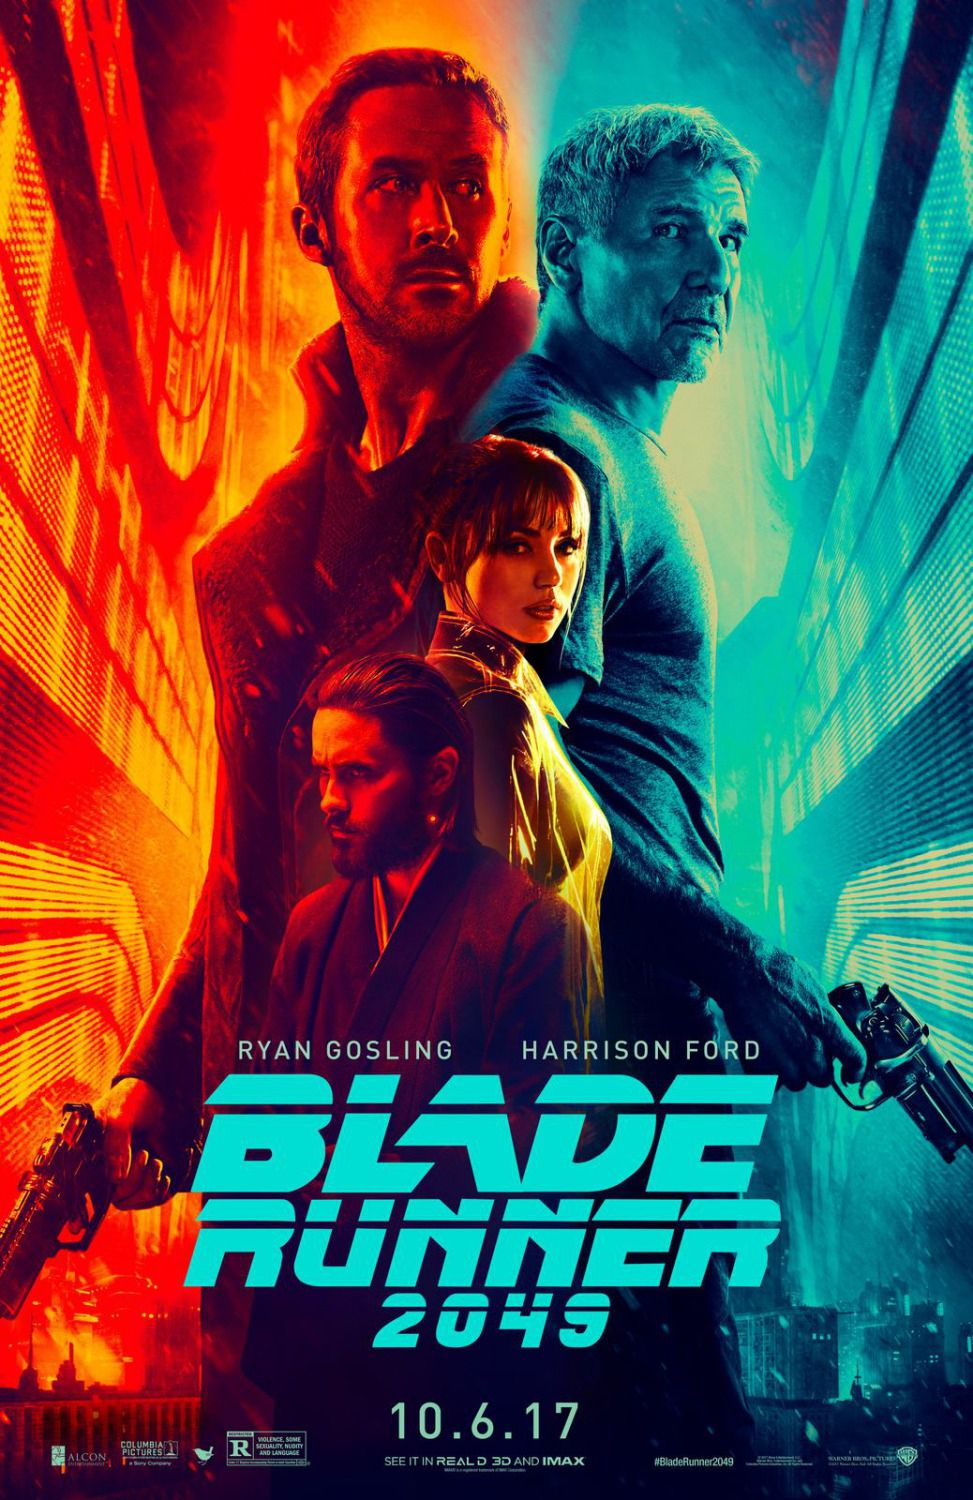 Blade Runner twenty forty nine 2049 - poster - Harrison Ford - Ryan Gosling - Robin Wright - Dave Bautista